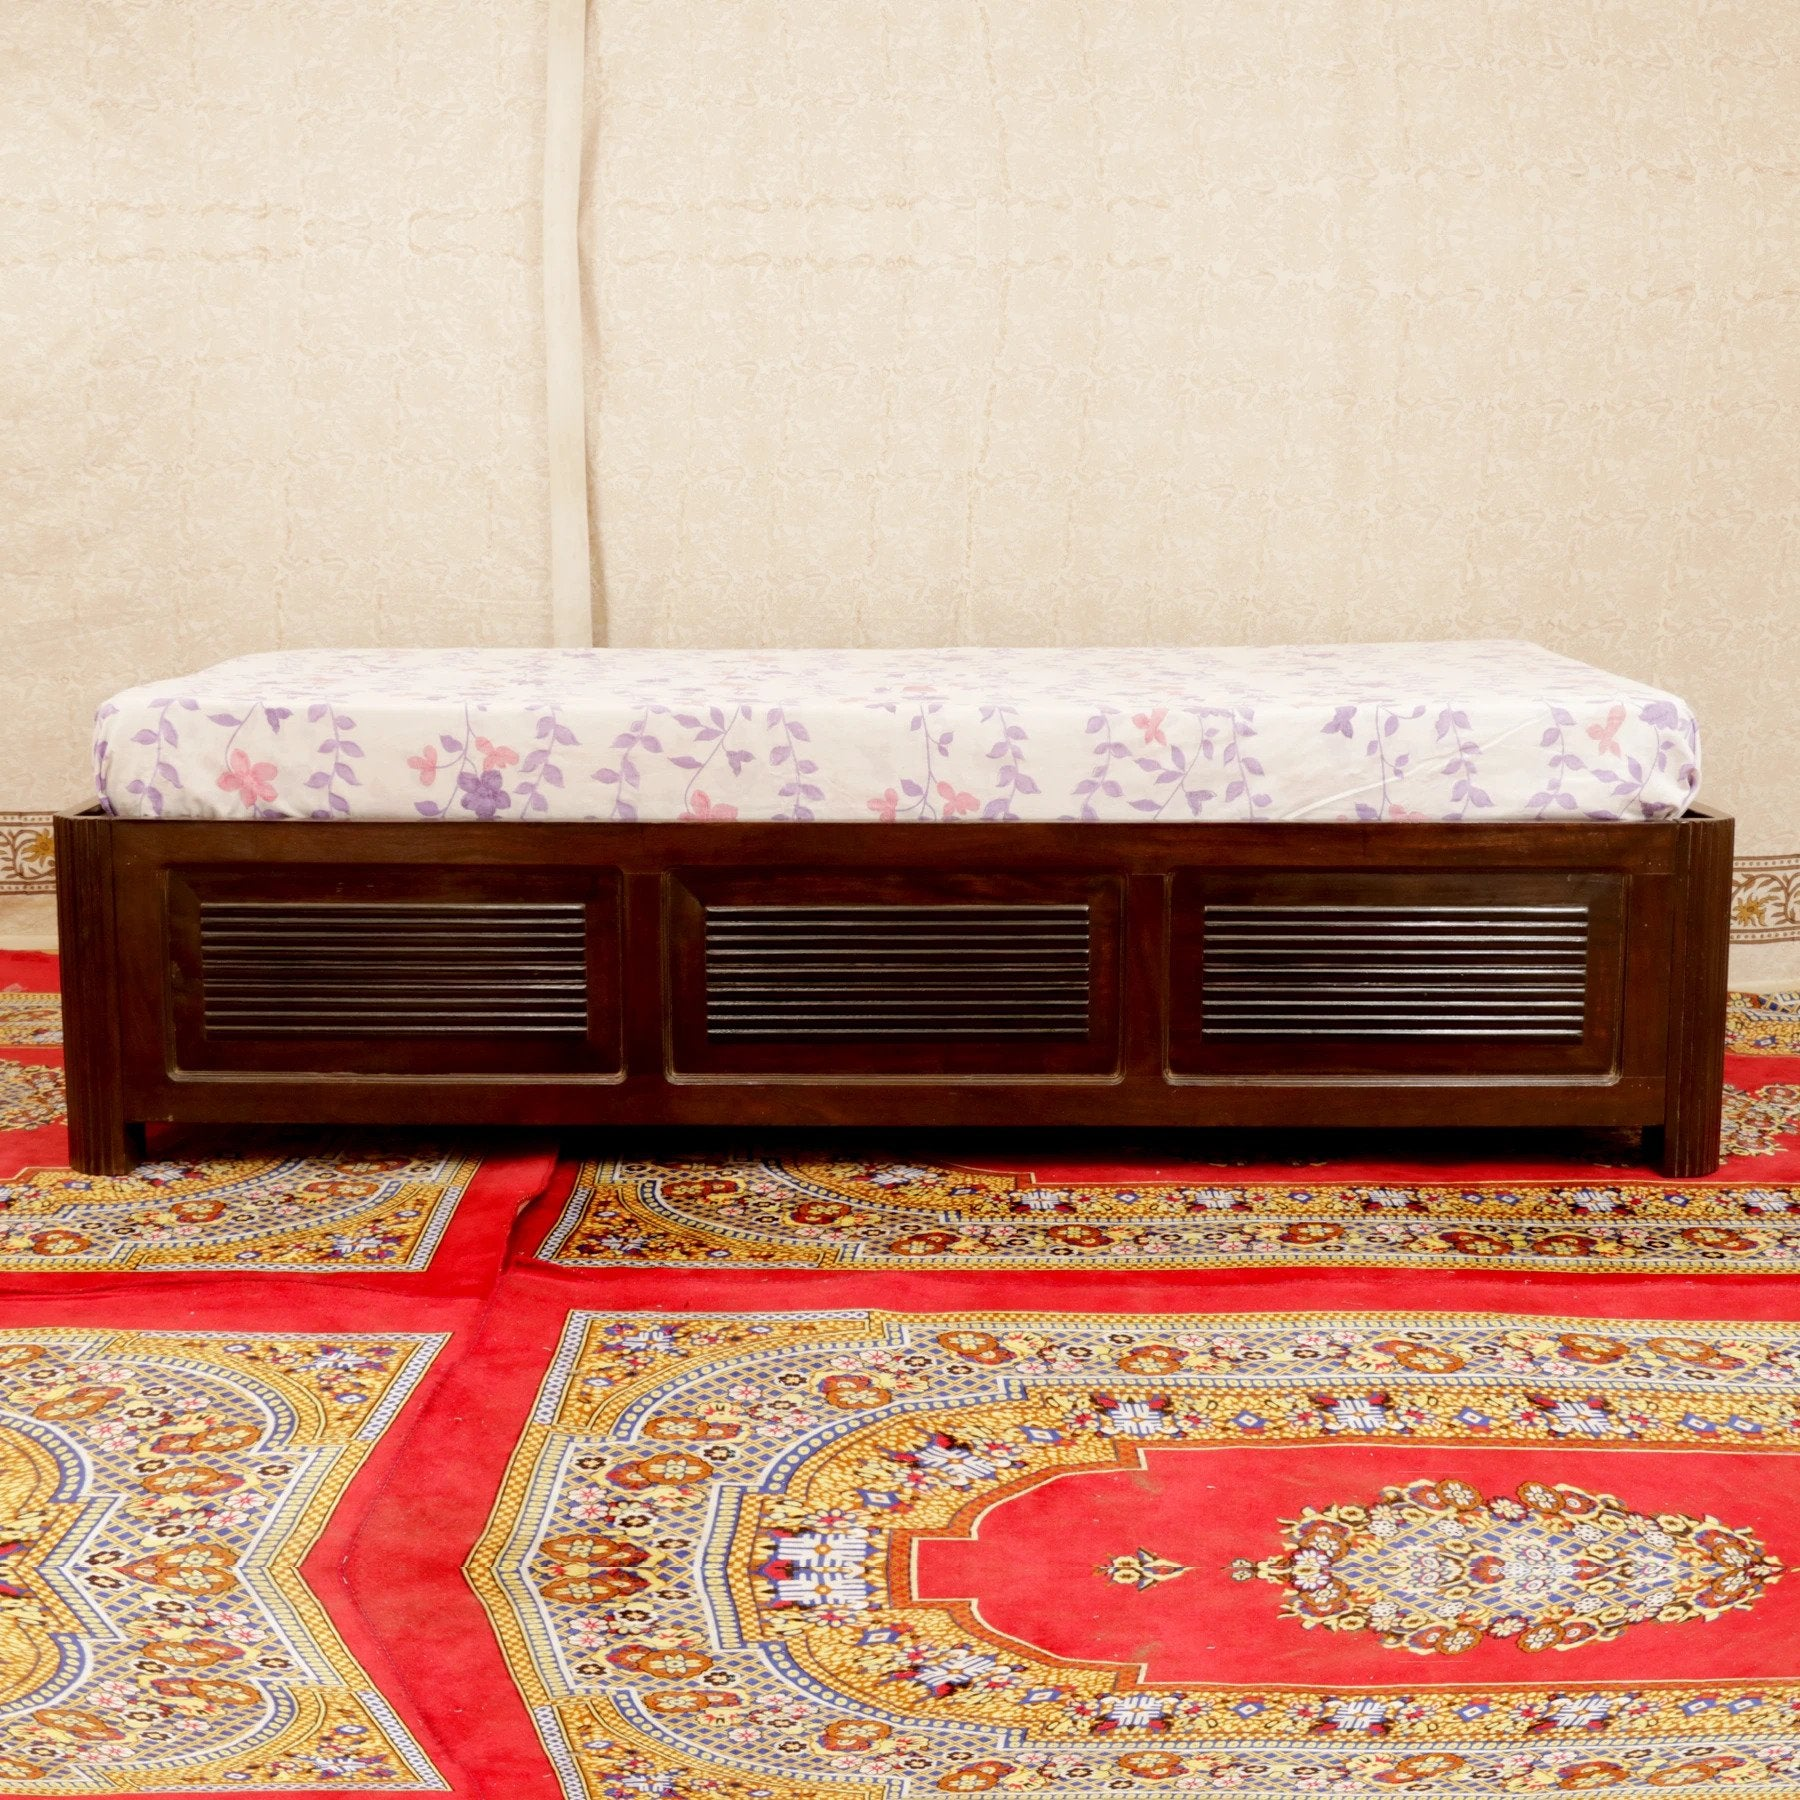 Diwans: The Timeless Classic for Indian Living Rooms